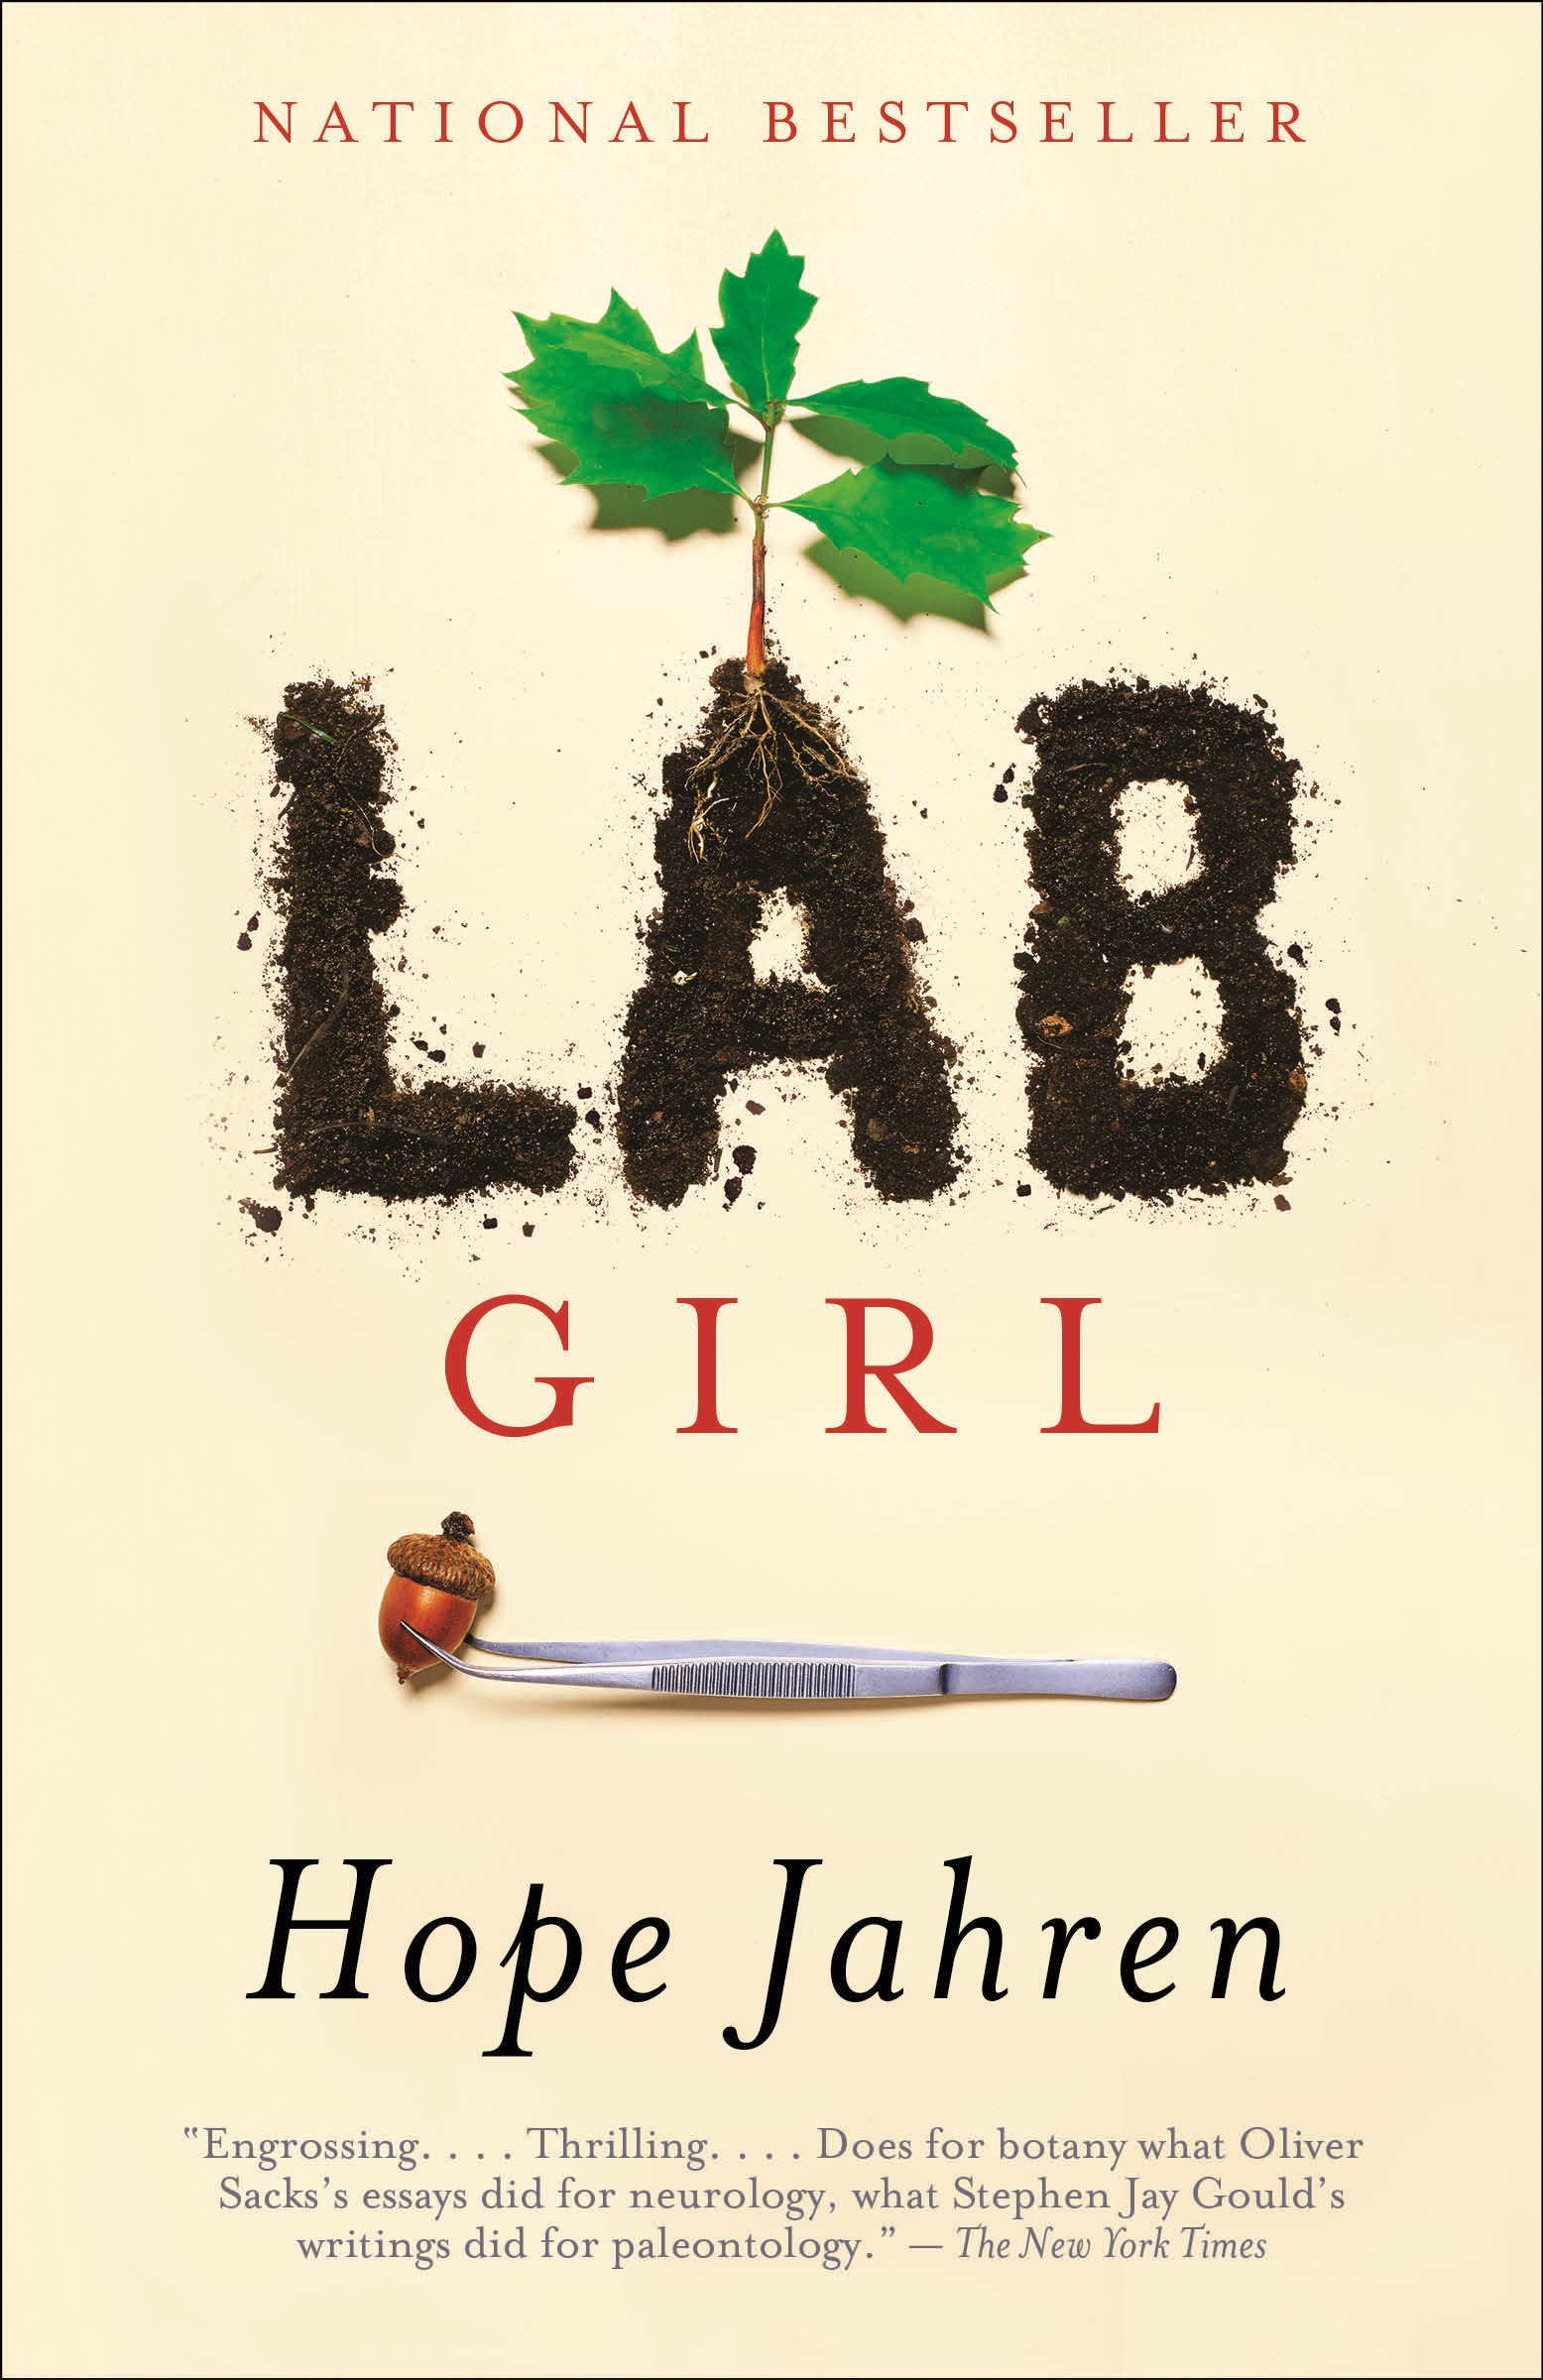 Cover of the book Lab Girl by Hope Jehren